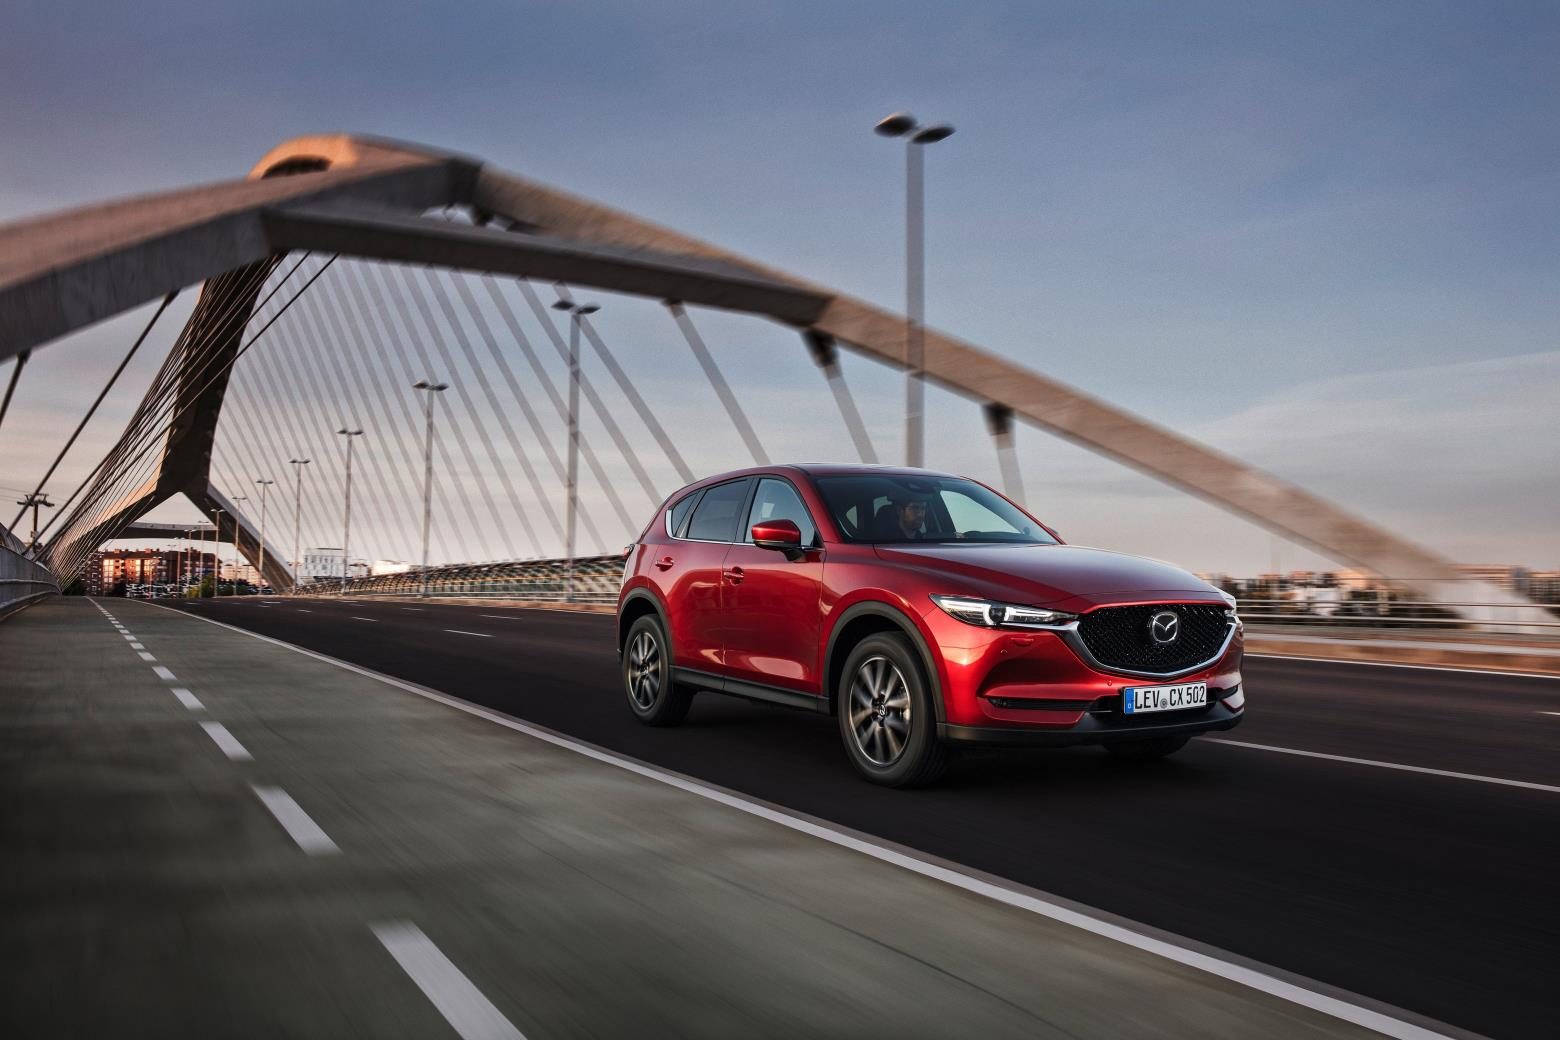 All-new-CX-5_BCN-2017_Action_02.jpg